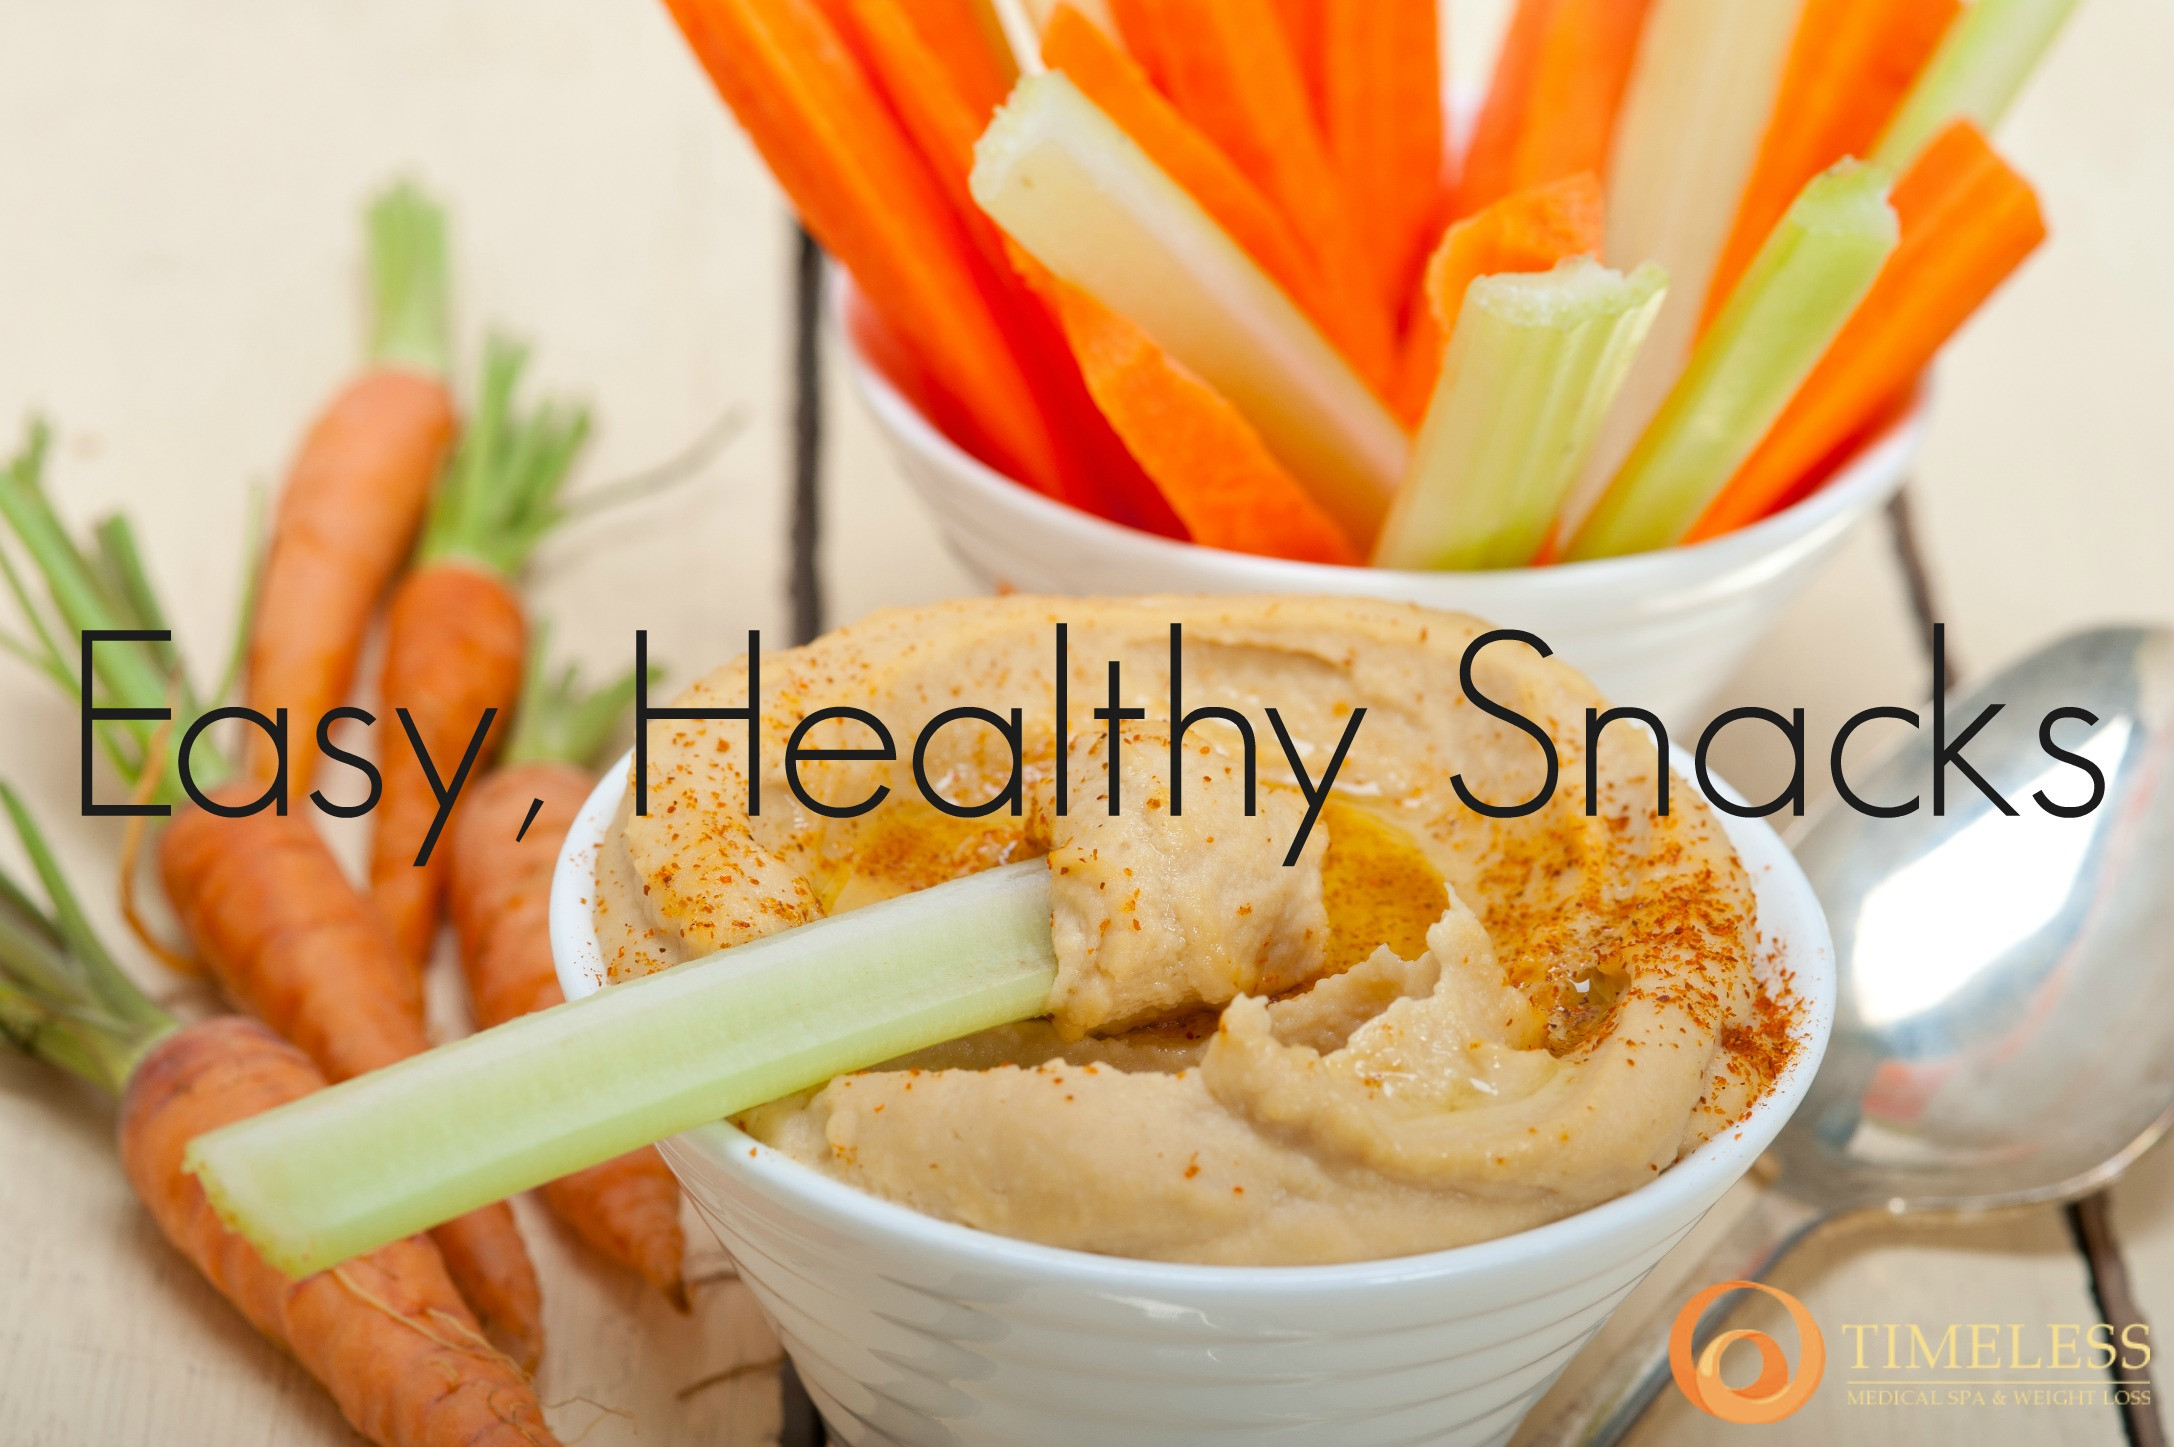 Pretzels Healthy Snack  Easy Healthy Snack Ideas TimeLess Weight Loss Blog